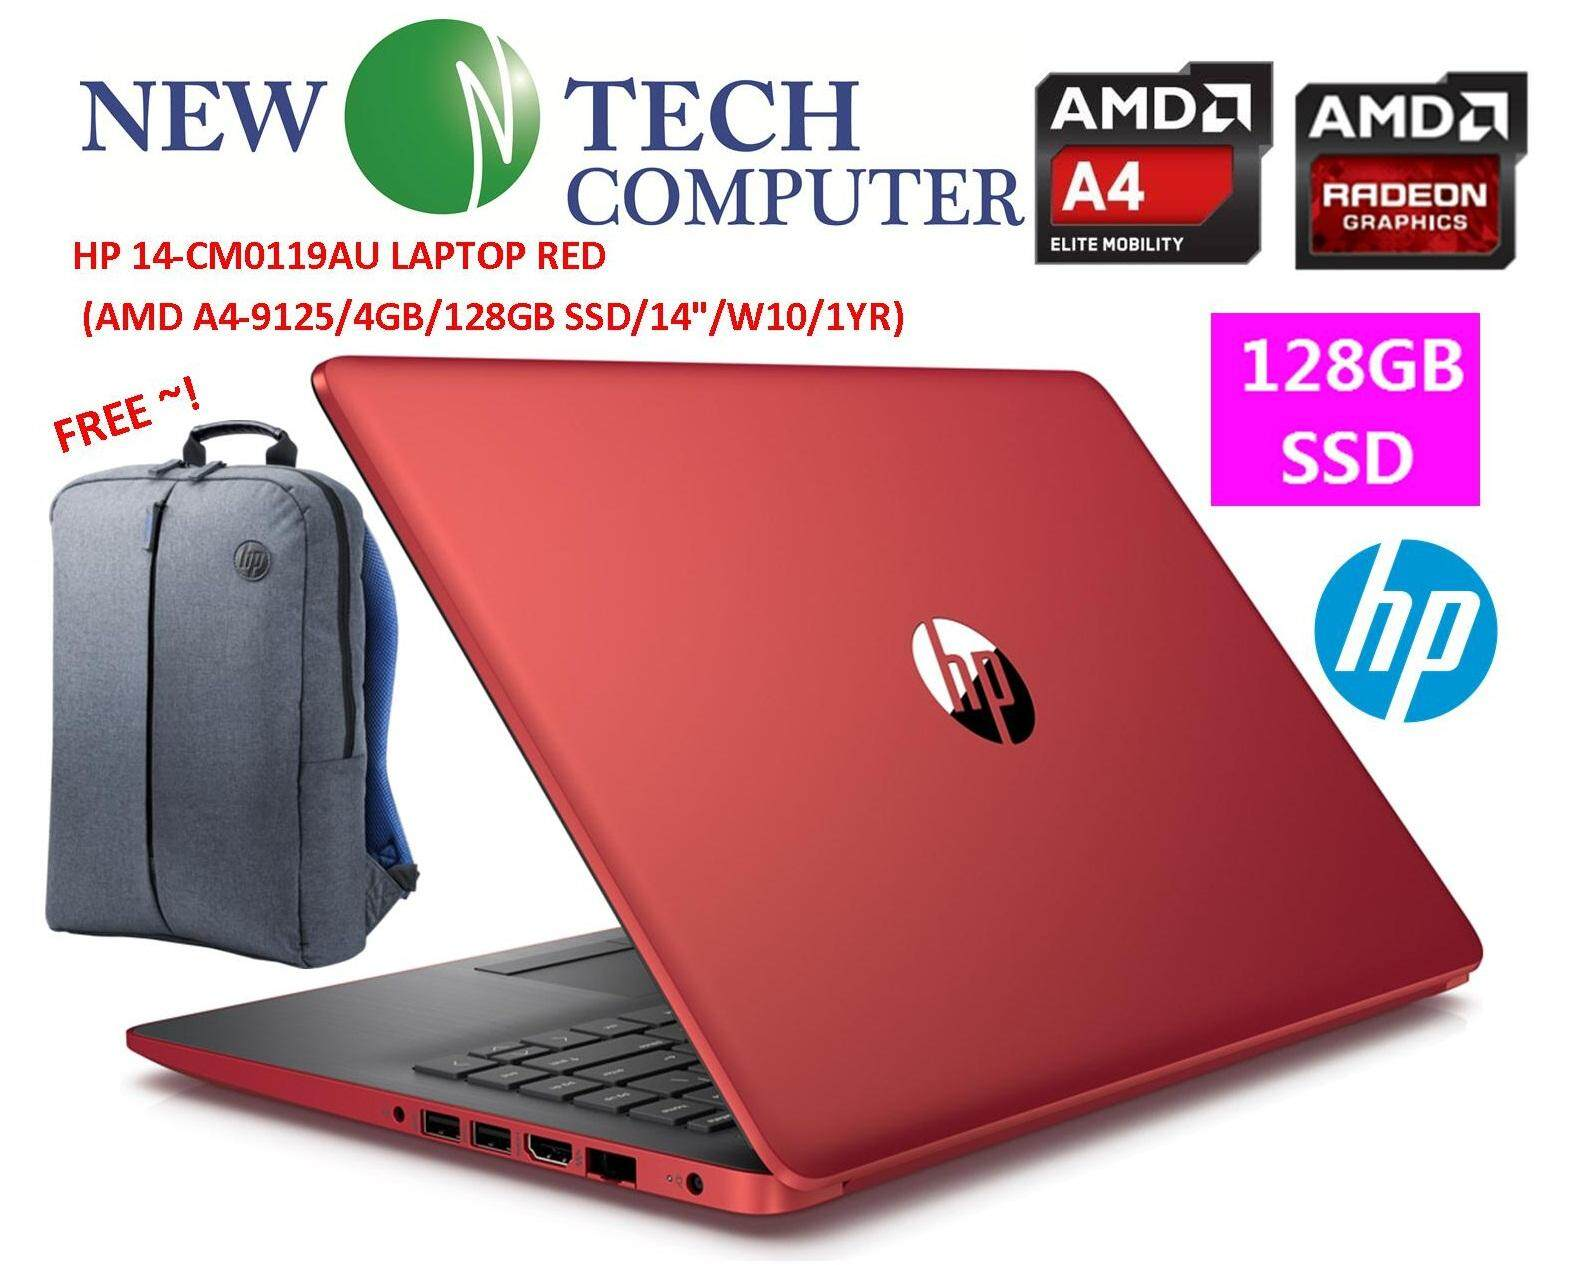 HP 14-CM0119AU RED LAPTOP (AMD A4-9125/4GB/RADEON R3/128GB SSD/14 /W10/1YR) Malaysia